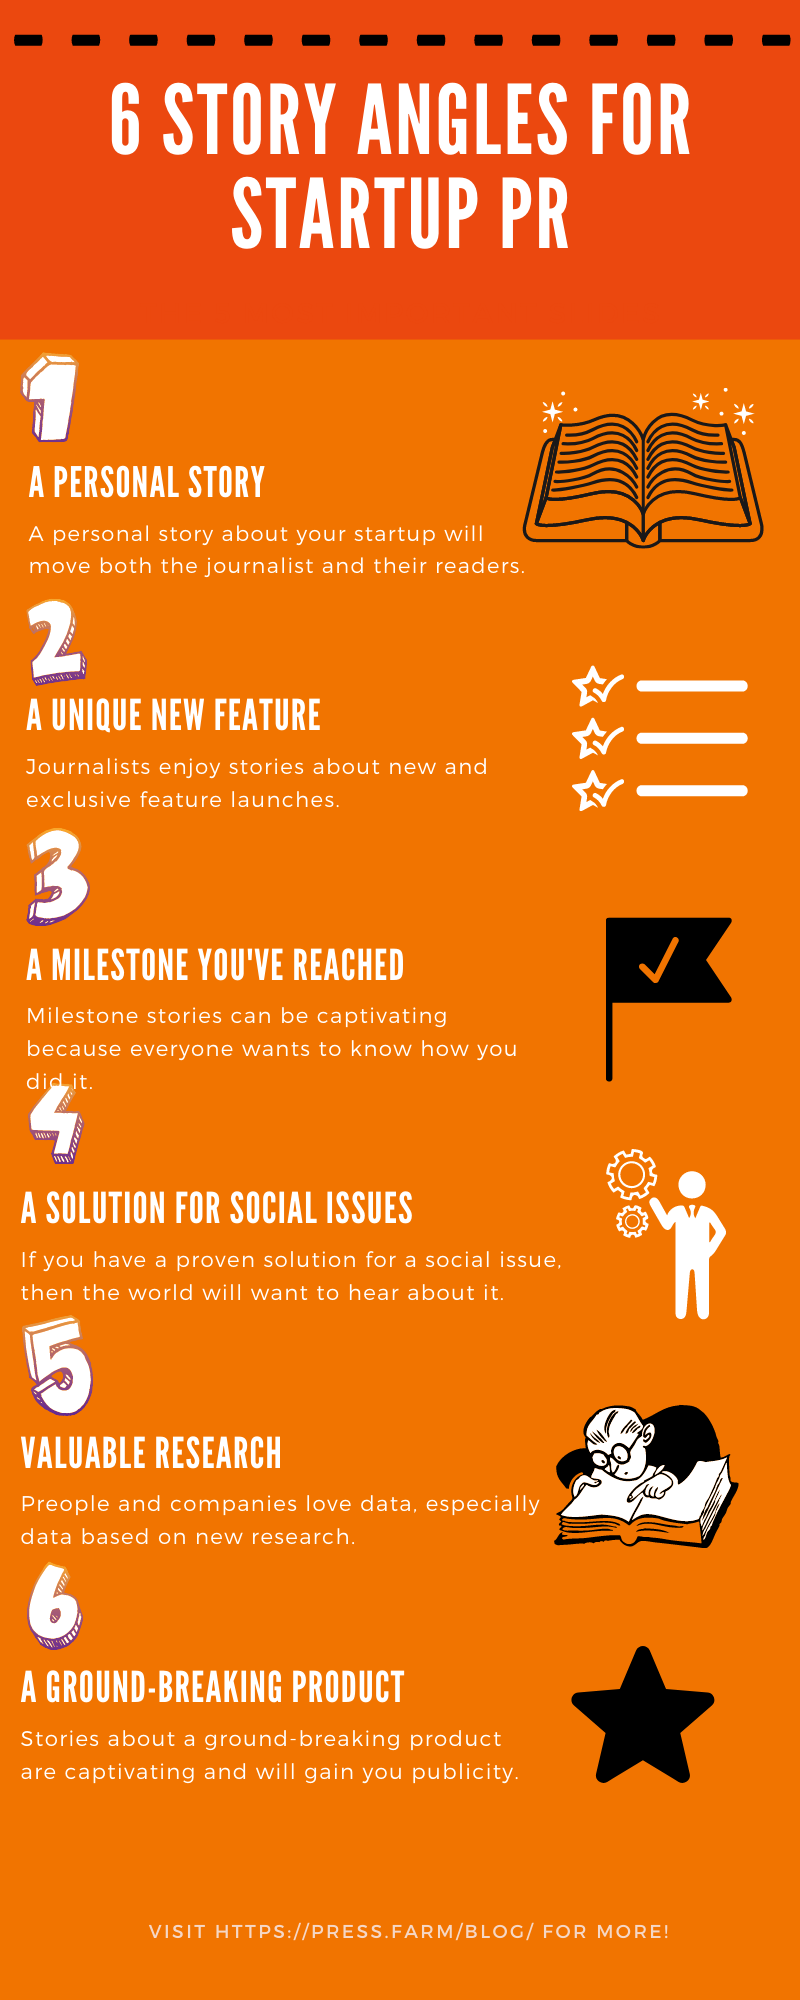 6 story angles for startup pr - Cold Email Journalists